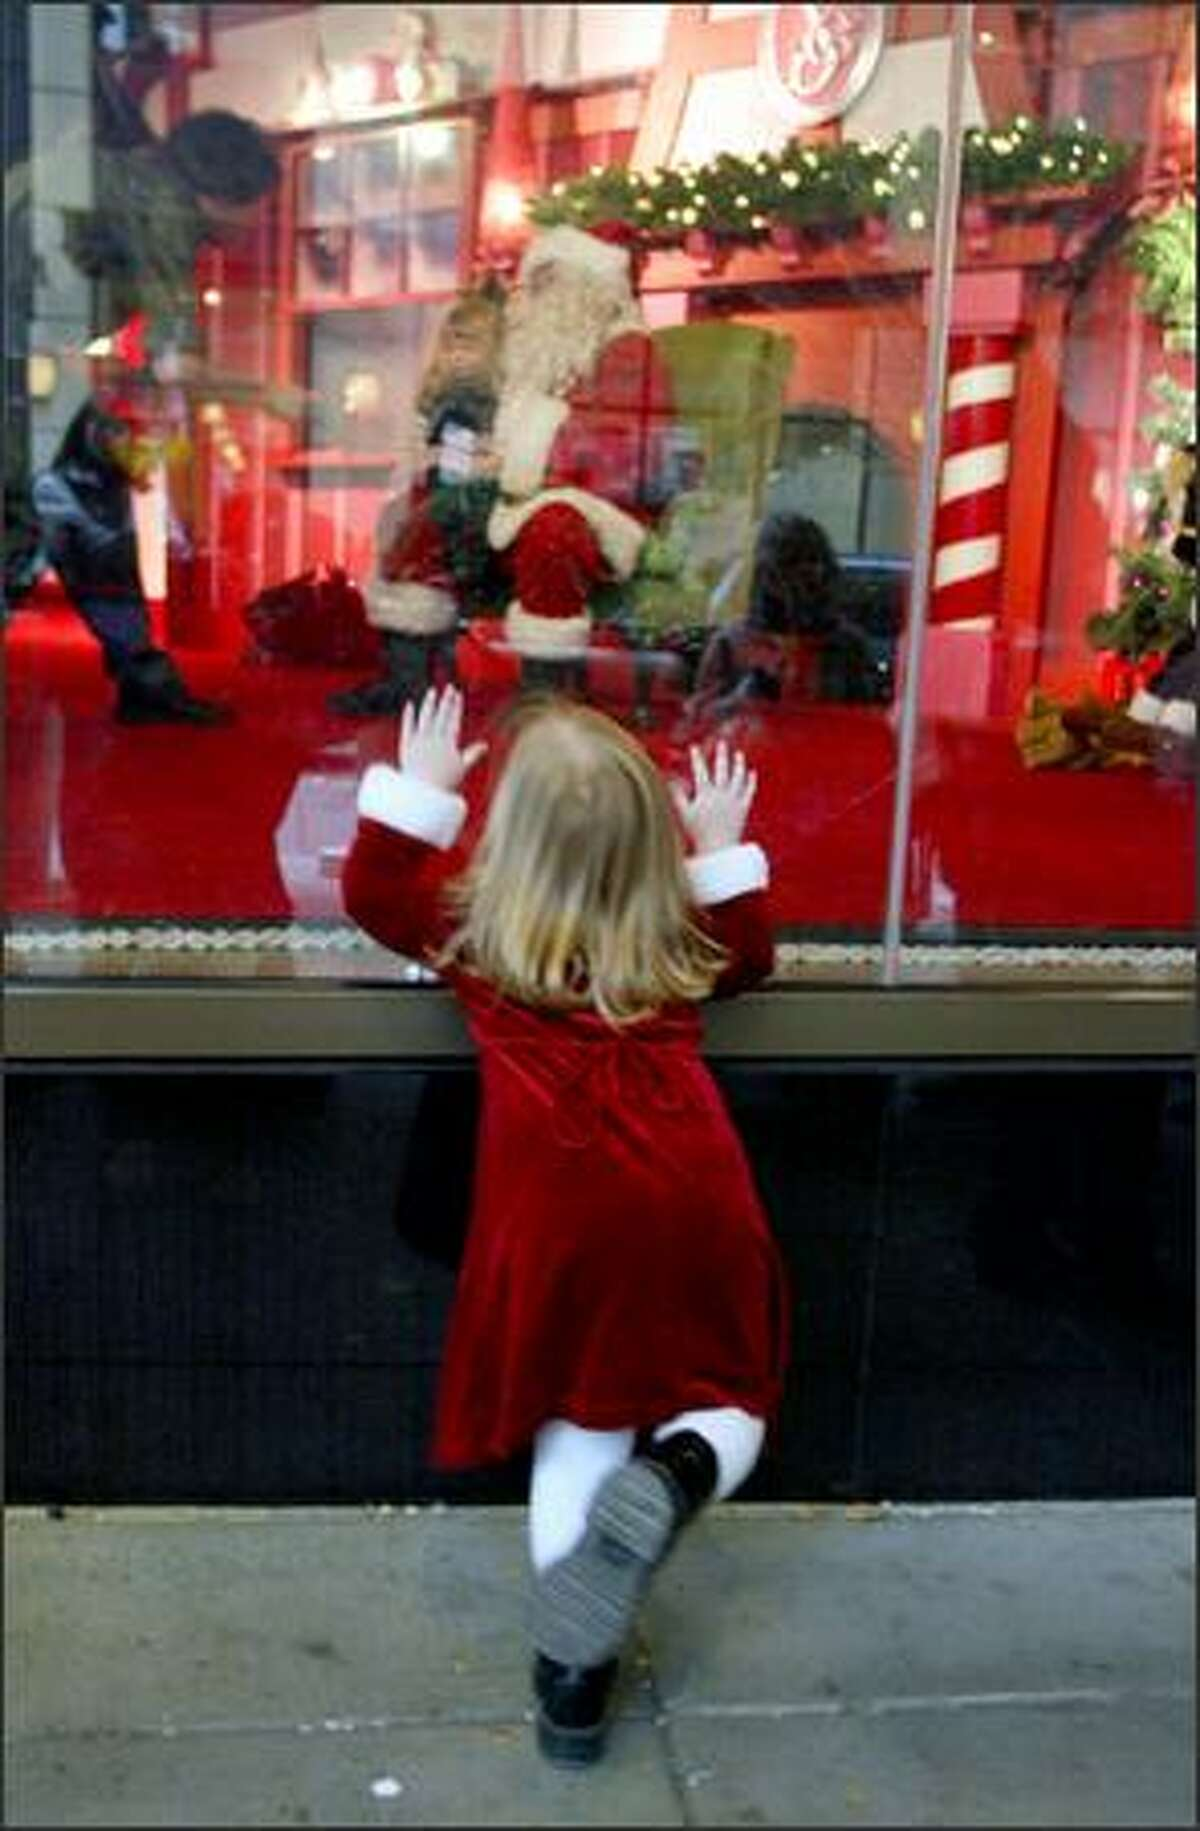 Antsy with anticipation, Lydia Nelson, 2, of Maple Valley looks in at Santa Claus as she waits in line to have her and her sister's photograph taken with him at Nordstrom in downtown Seattle.